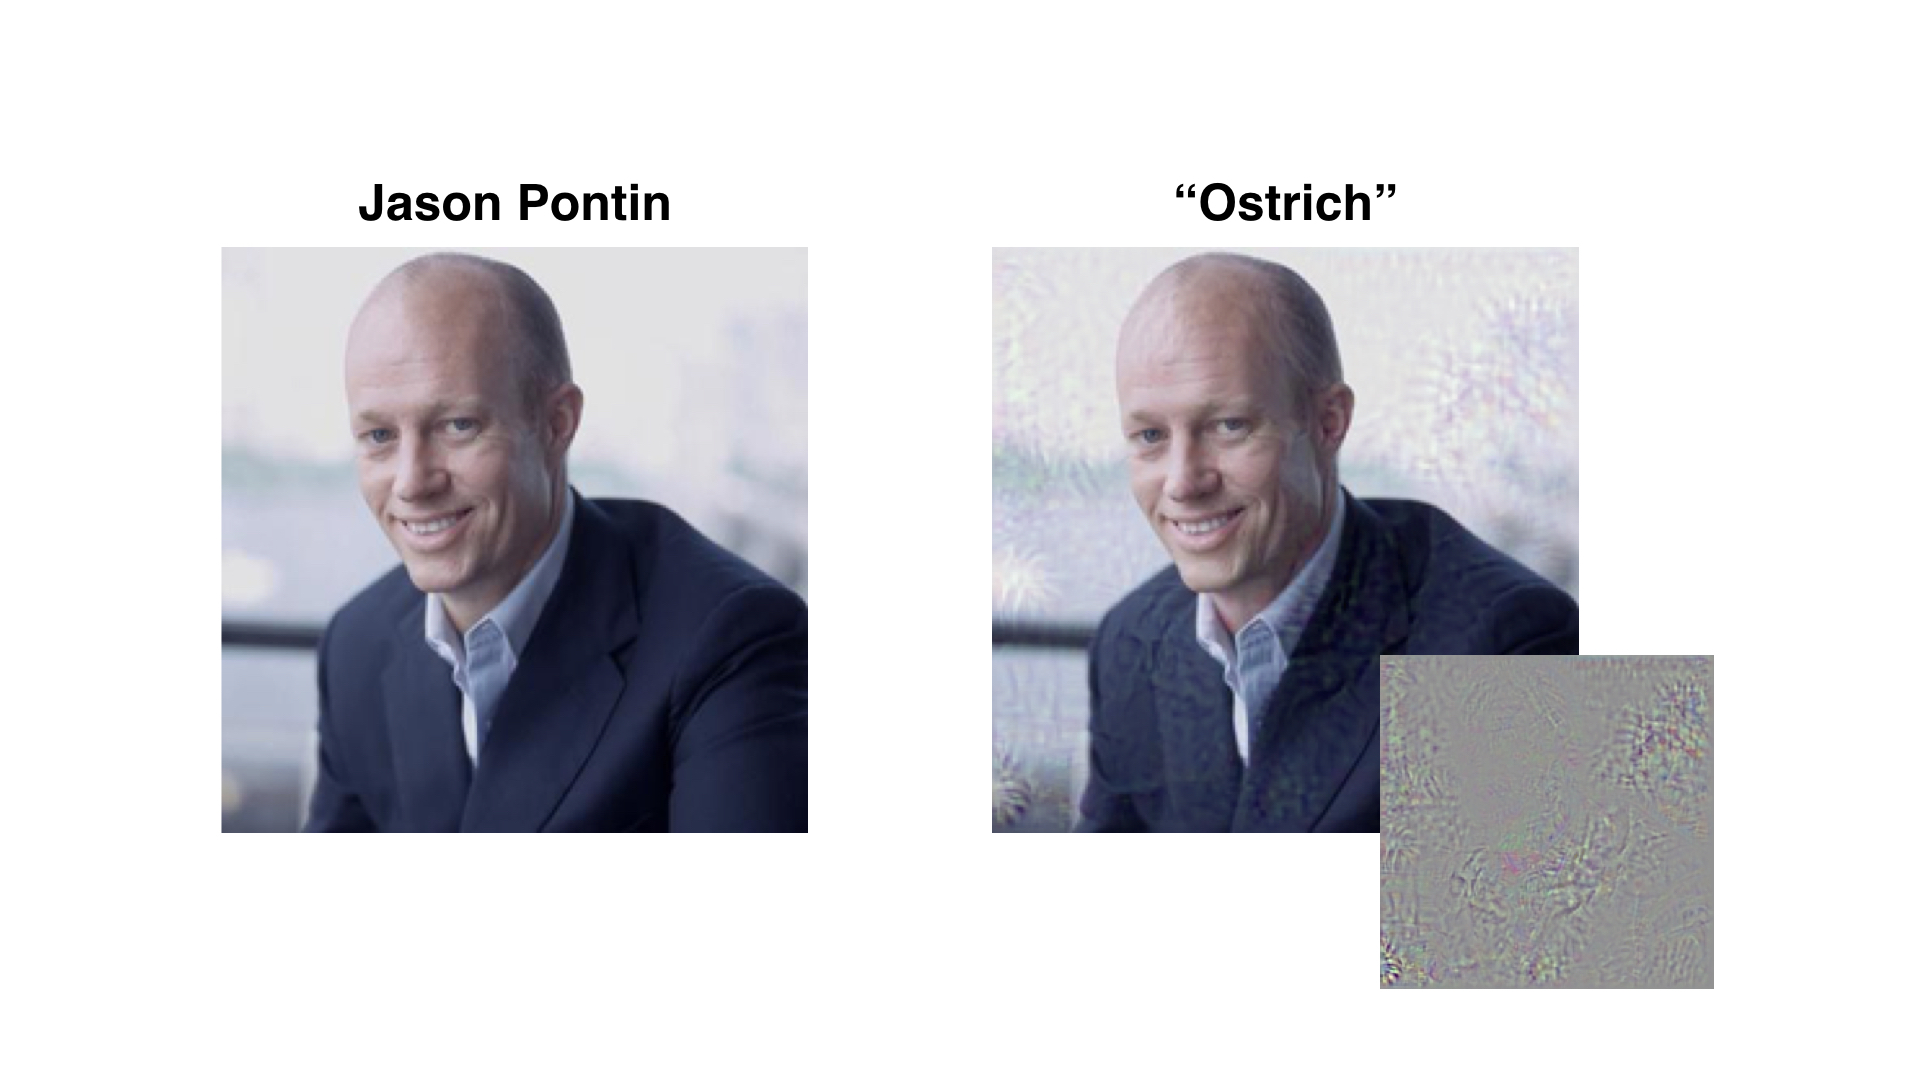 With a little bit of added noise (lower right), a computer can be fooled into thinking that an image of MIT Technology Review's Editor-in-Chief Jason Pontin is in fact an ostrich.